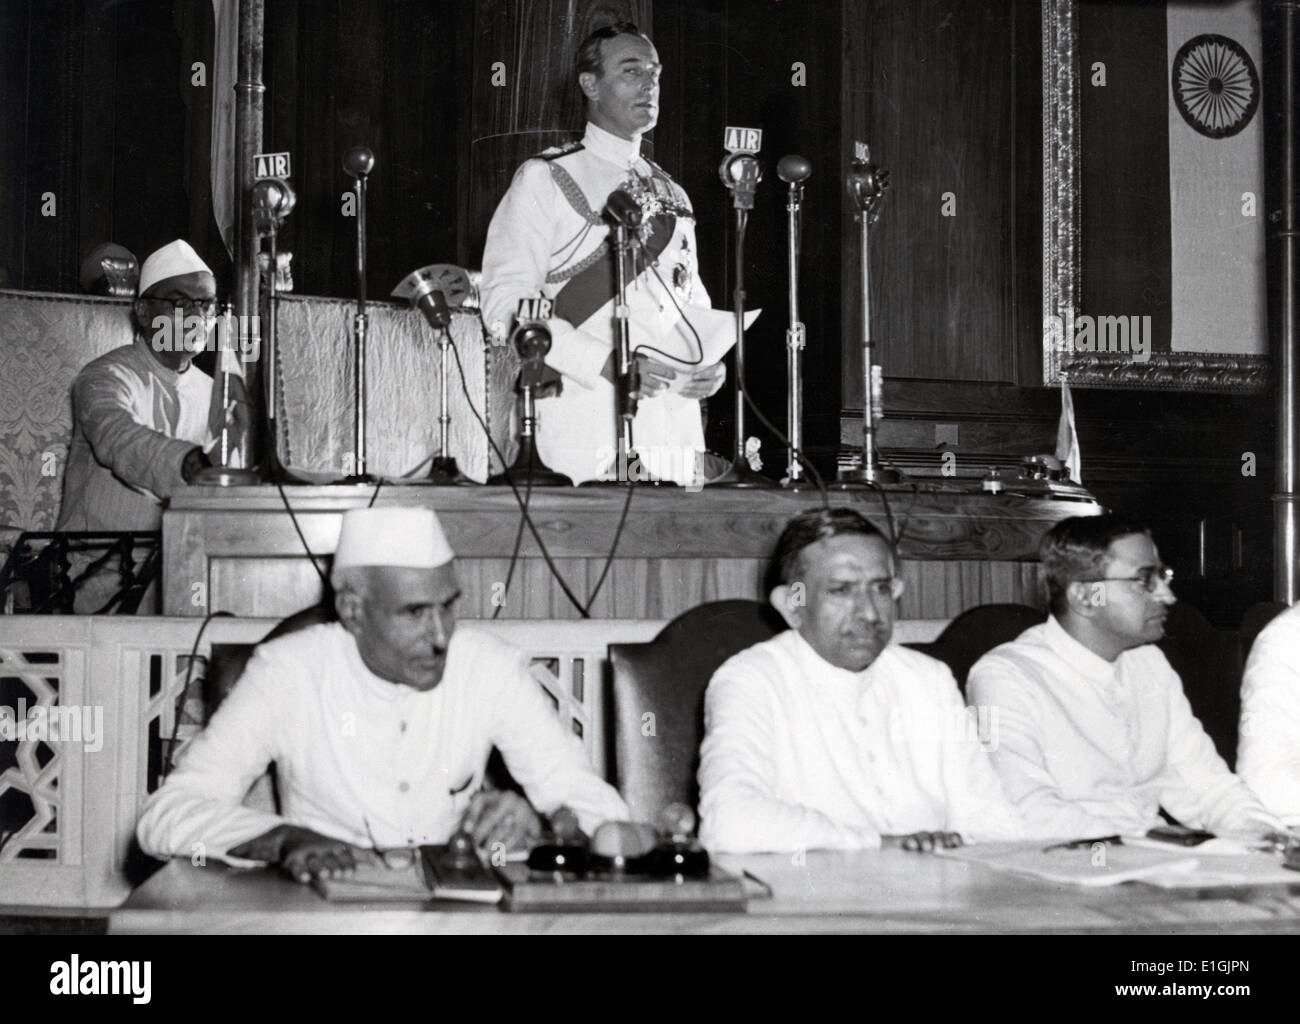 Jawaharlal Nehru and Lord Mountbatten Declare Indian Independence in Constituent Assembly, Delhi 15 August 1947 - Stock Image